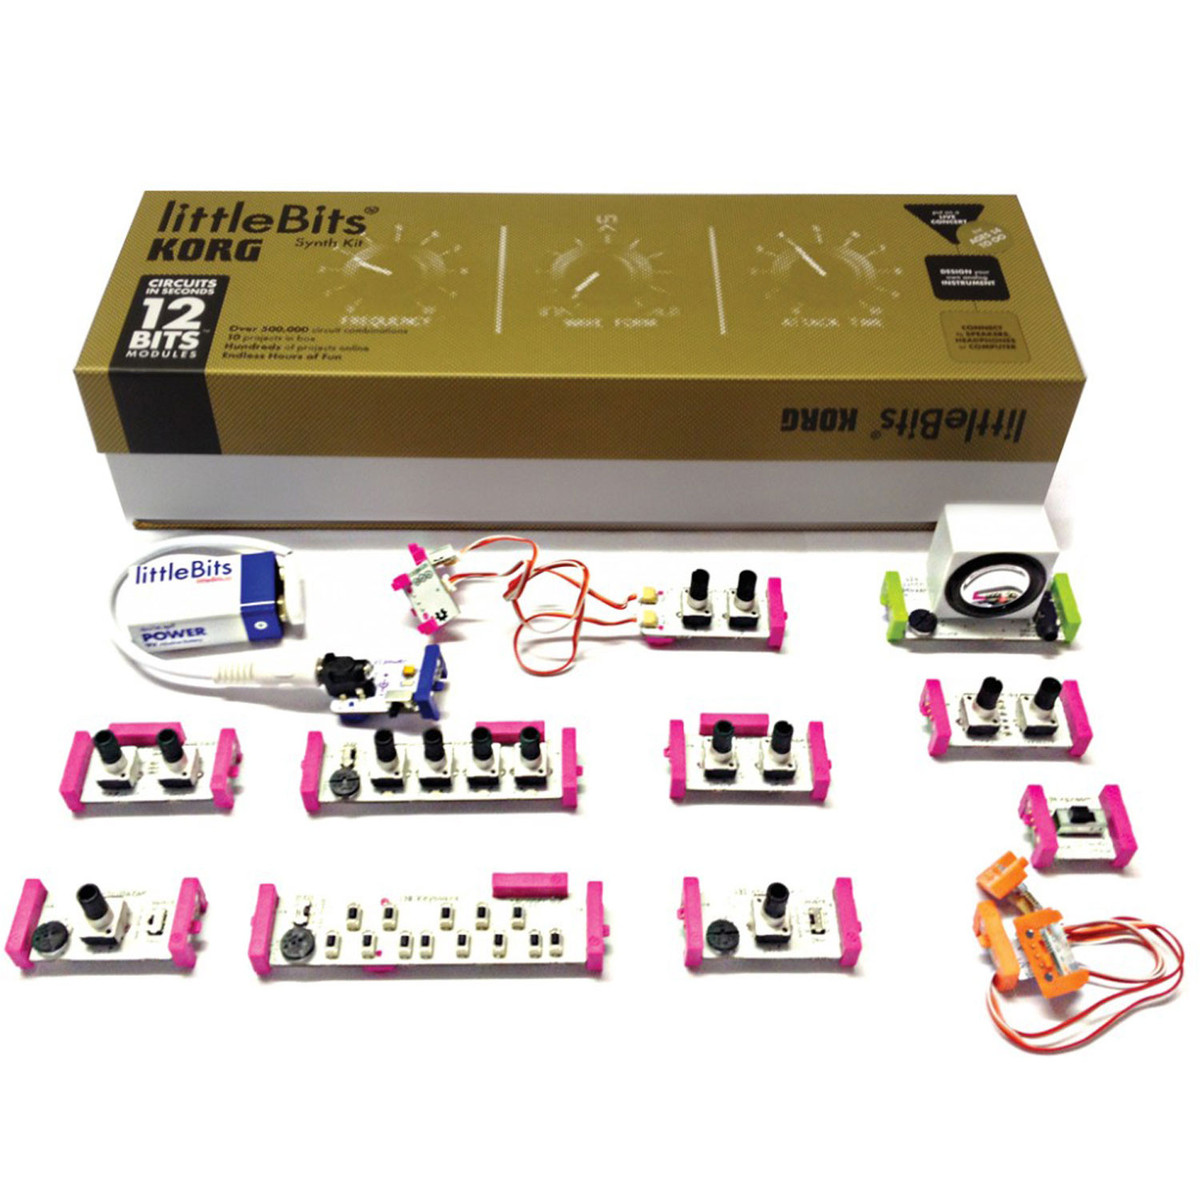 Build Analog Synthesizer Kit